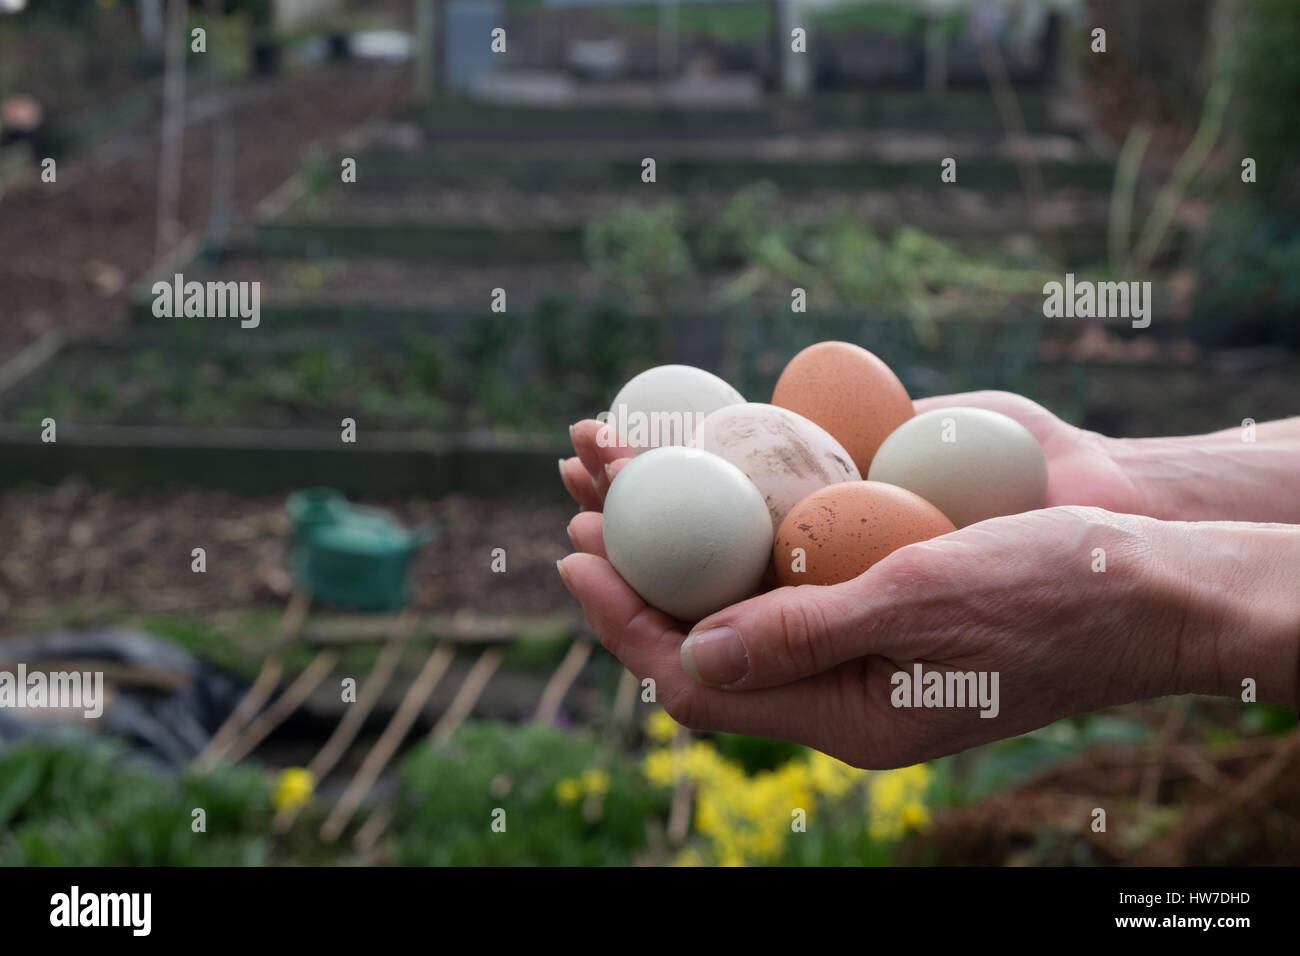 Hands holding out varied fresh laid eggs - Stock Image